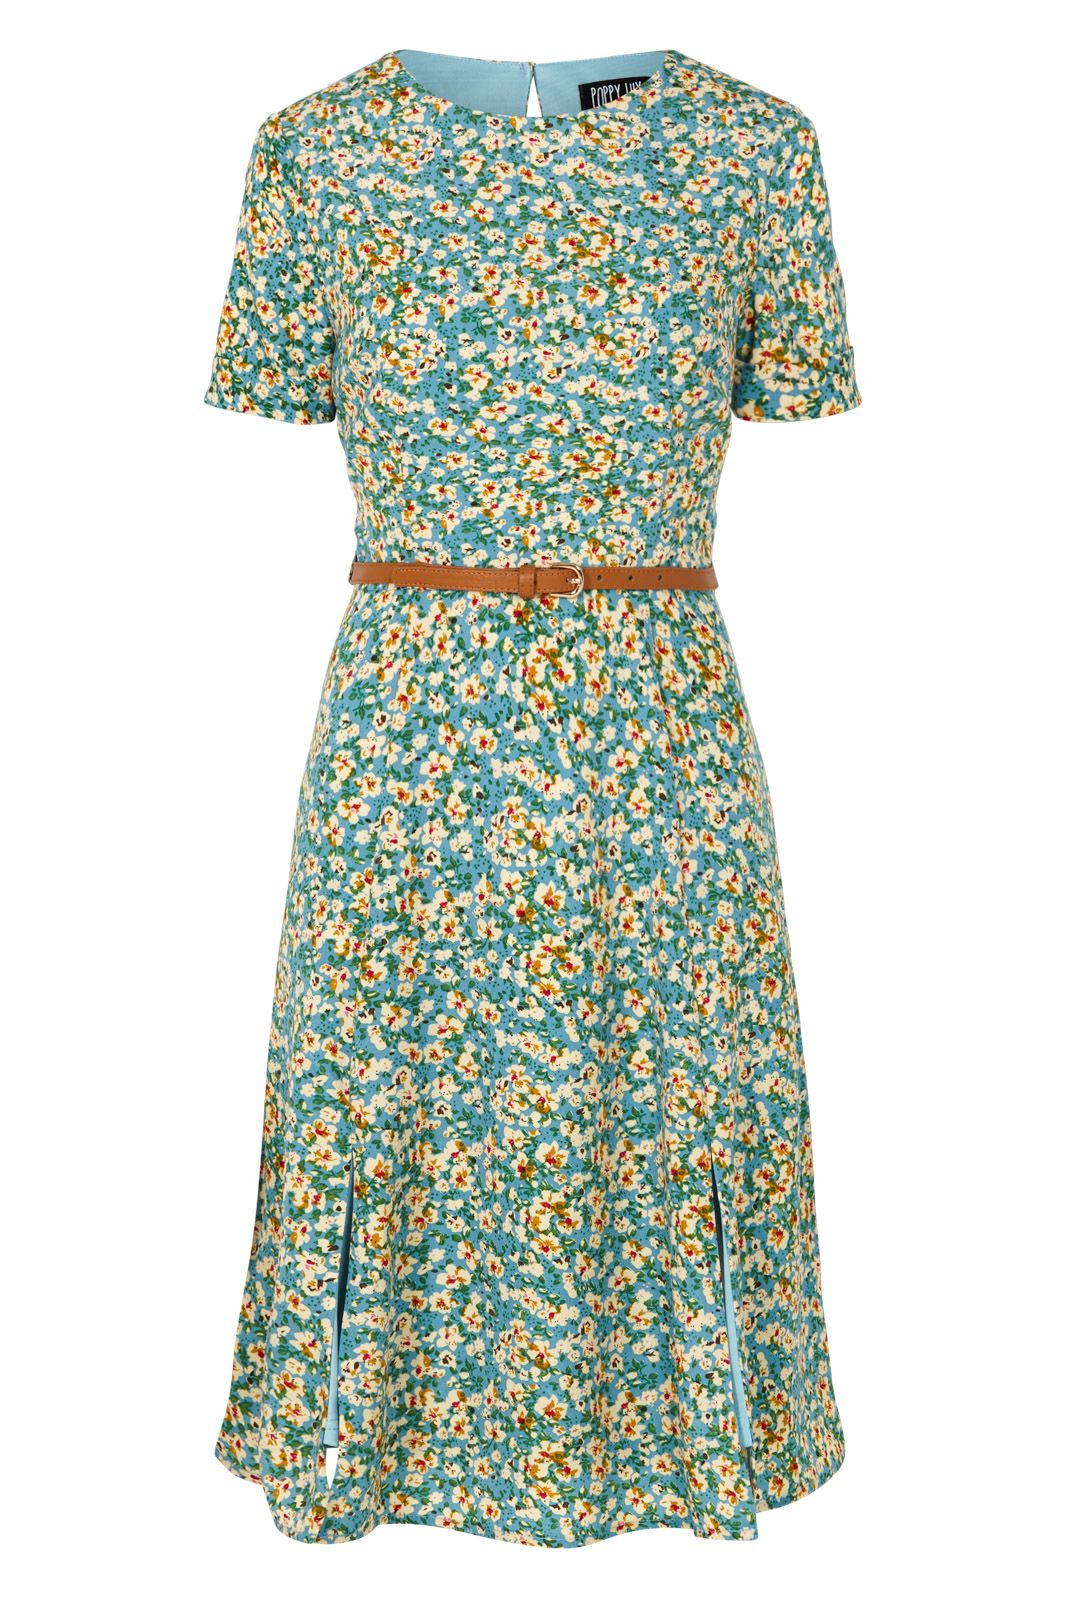 Poppy Lux Duska Floral Fit And Flare Dress, Multi-coloured